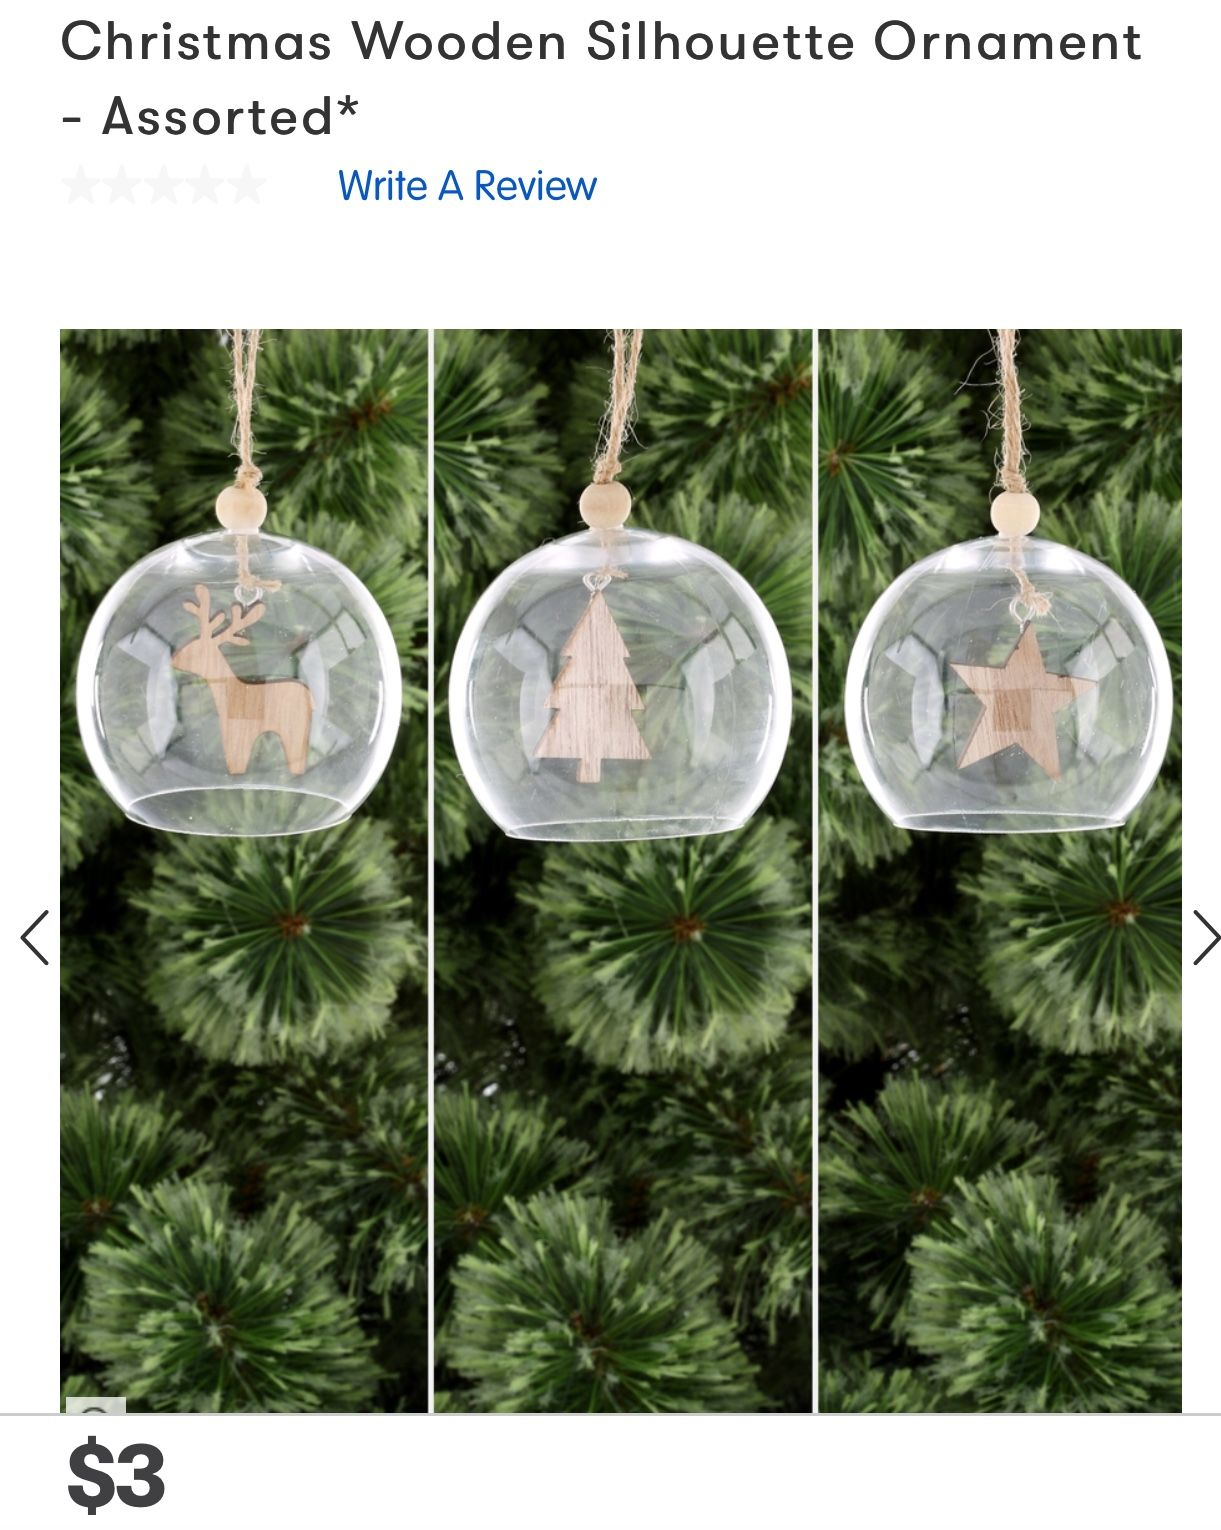 Big W | Wooden Silhouette Ornament Assorted $3 | Christmas